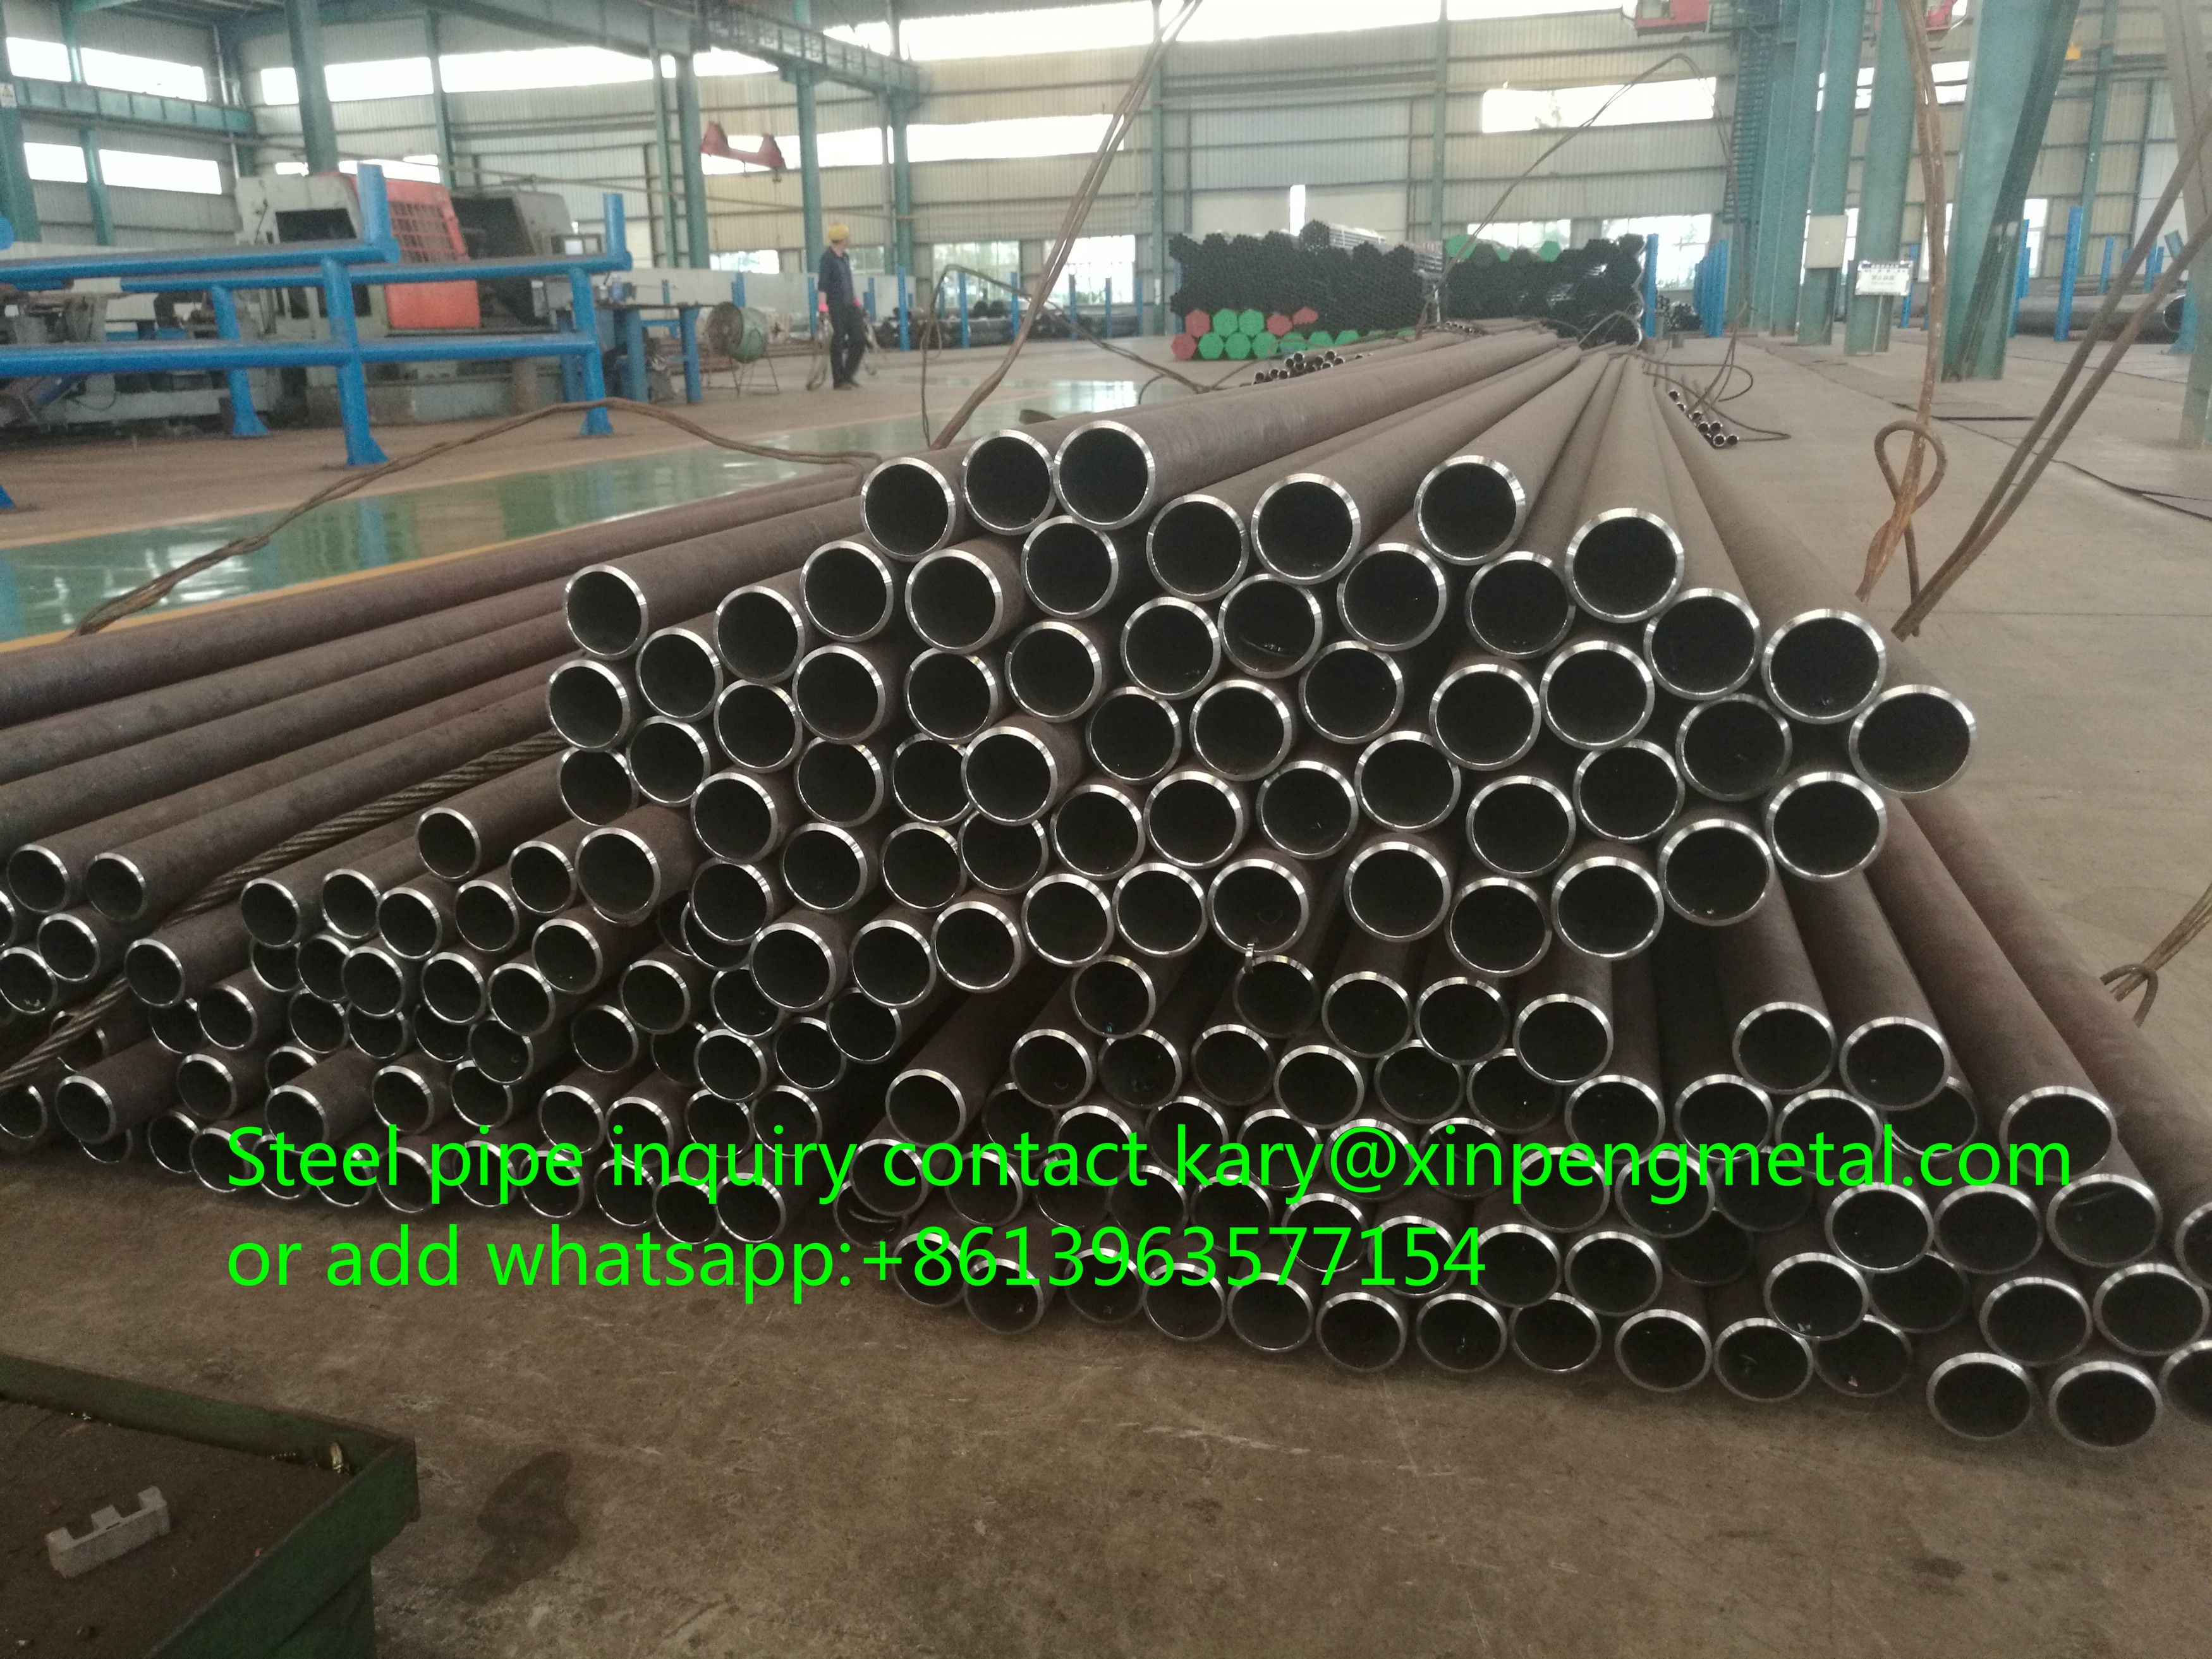 Industry news: The Development and Application Of Steel Tube Industry Conference (DASTIC) is helded by China steel structure association steel pipe branch and Shanghai steel pipe industry association, on 1th-3th Nov in Longbai restaurant in Shanghai.If you have steel pipe inquiry contact Email:kary@xinpengmetal.com or add my skype:fengling130724 or whatsapp:+86 13963577154